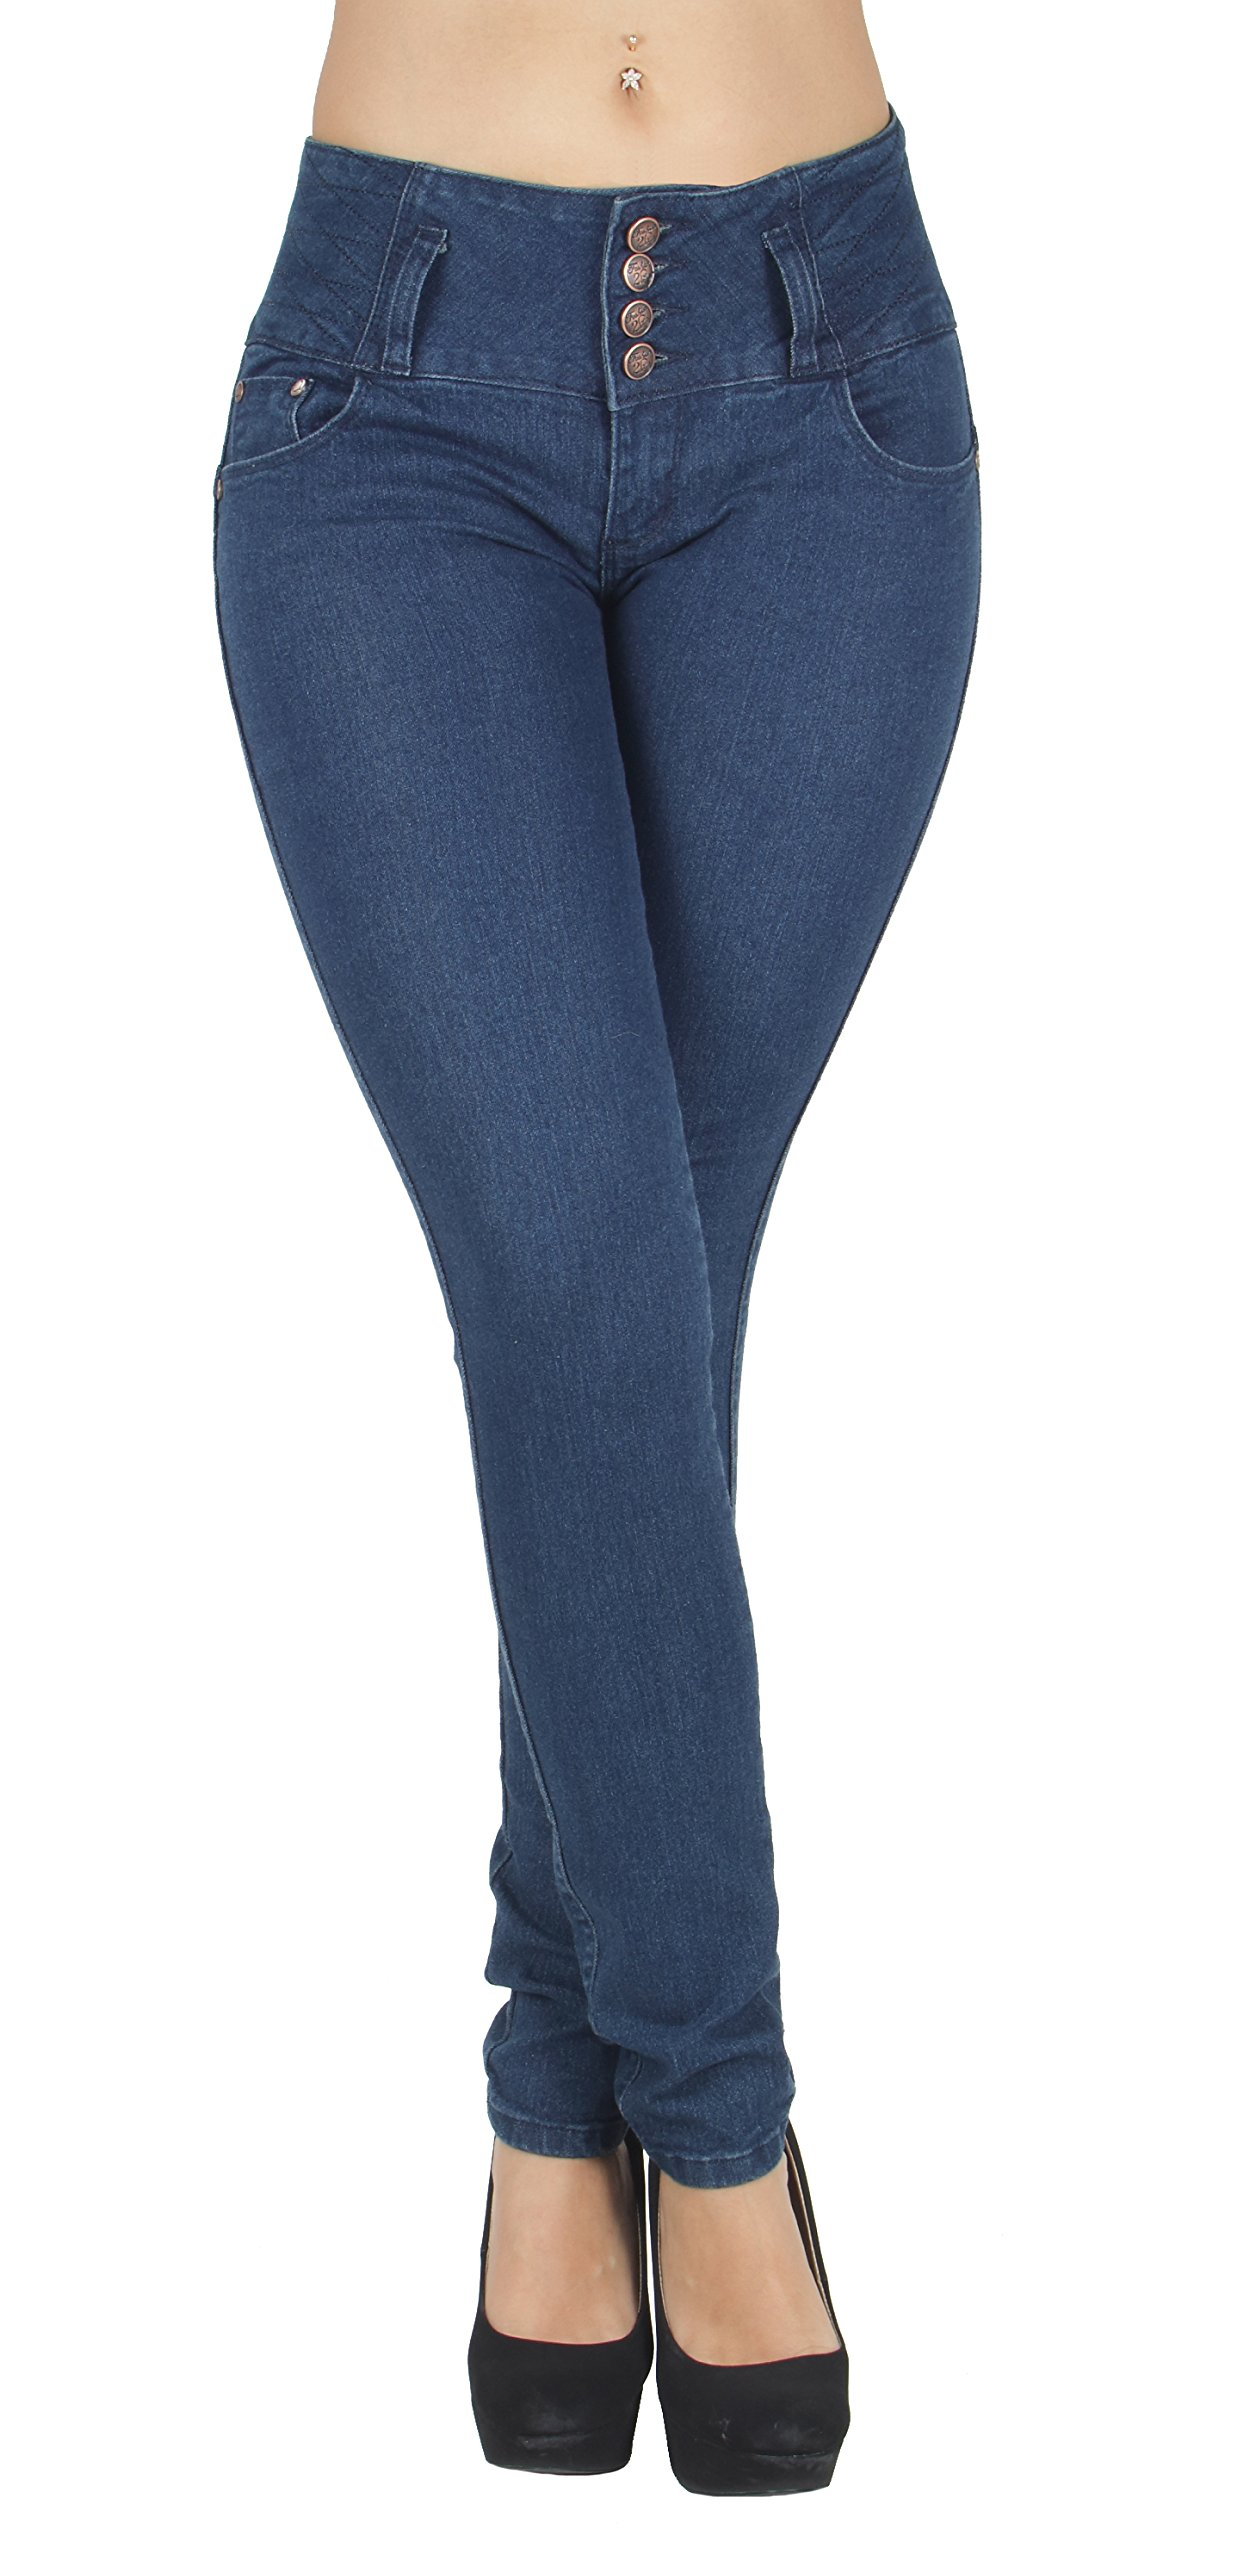 Fashion2Love K319P - Plus Size, Butt Lift, Levanta Cola, Elastic Waist, Sexy Skinny Jeans in Navy Size 20